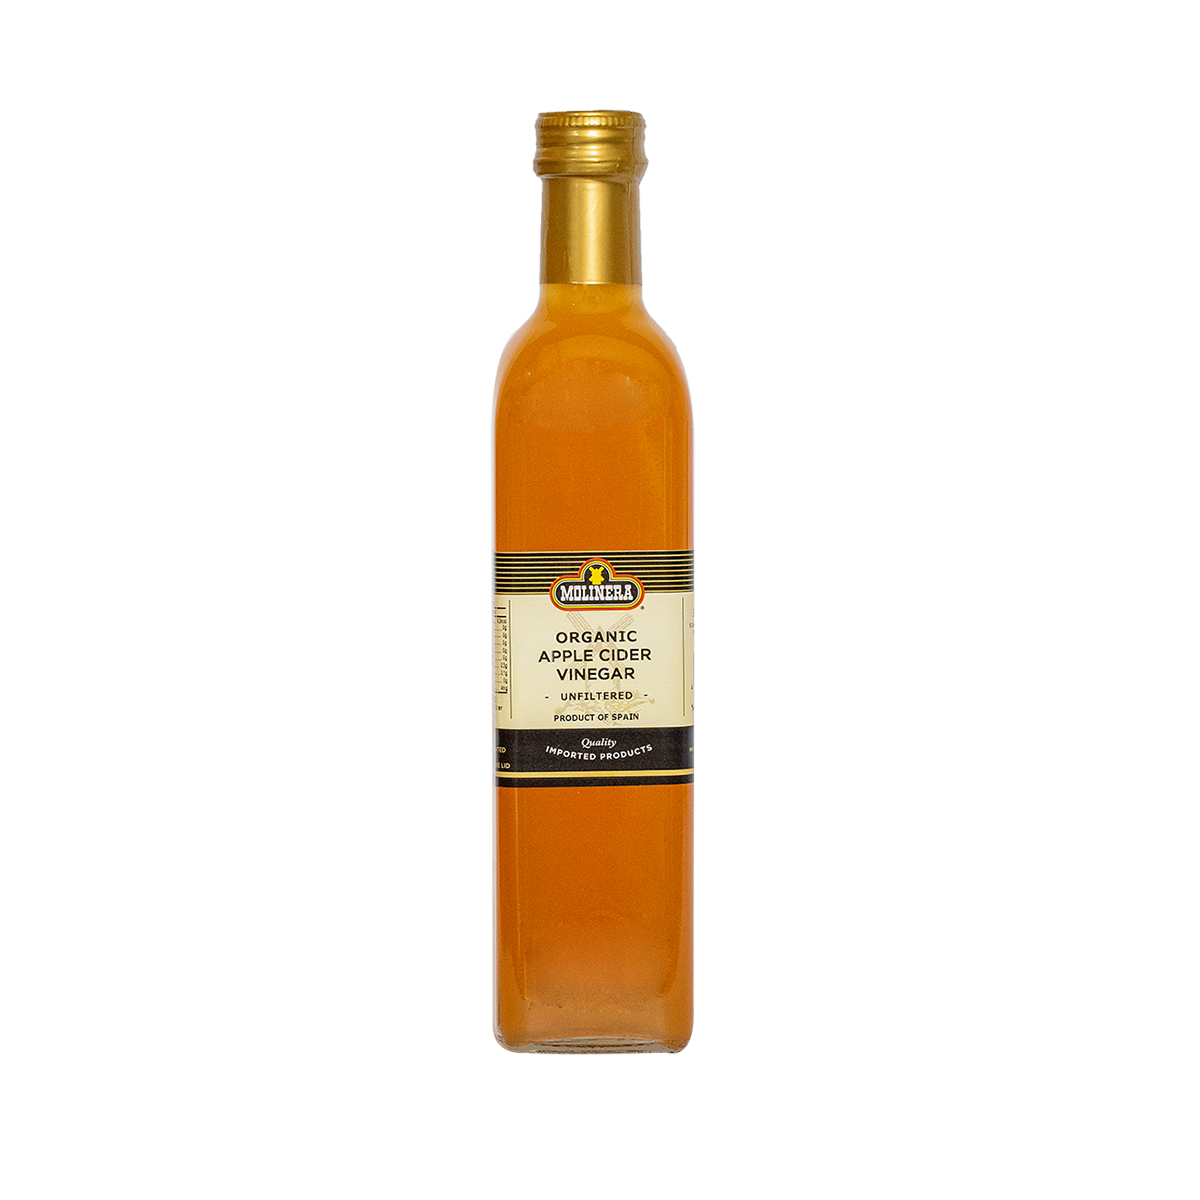 Molinera Organic Apple Cider Vinegar (Unfiltered)